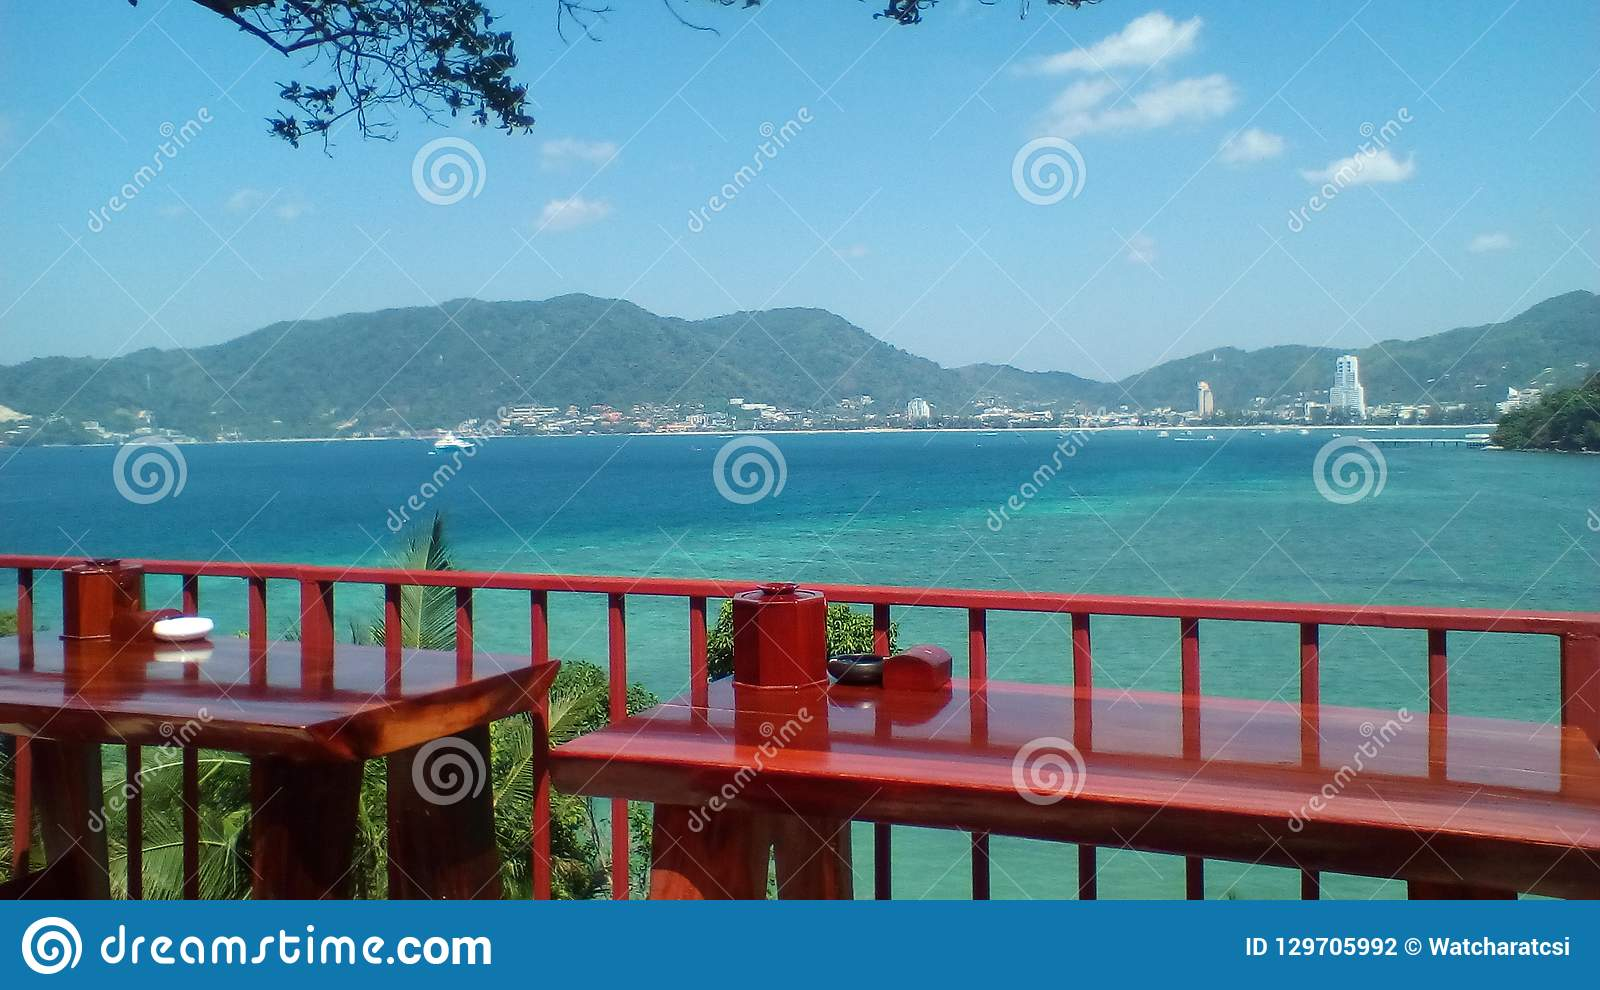 Patong beach view on the west coast of Phuket Island, Thailand